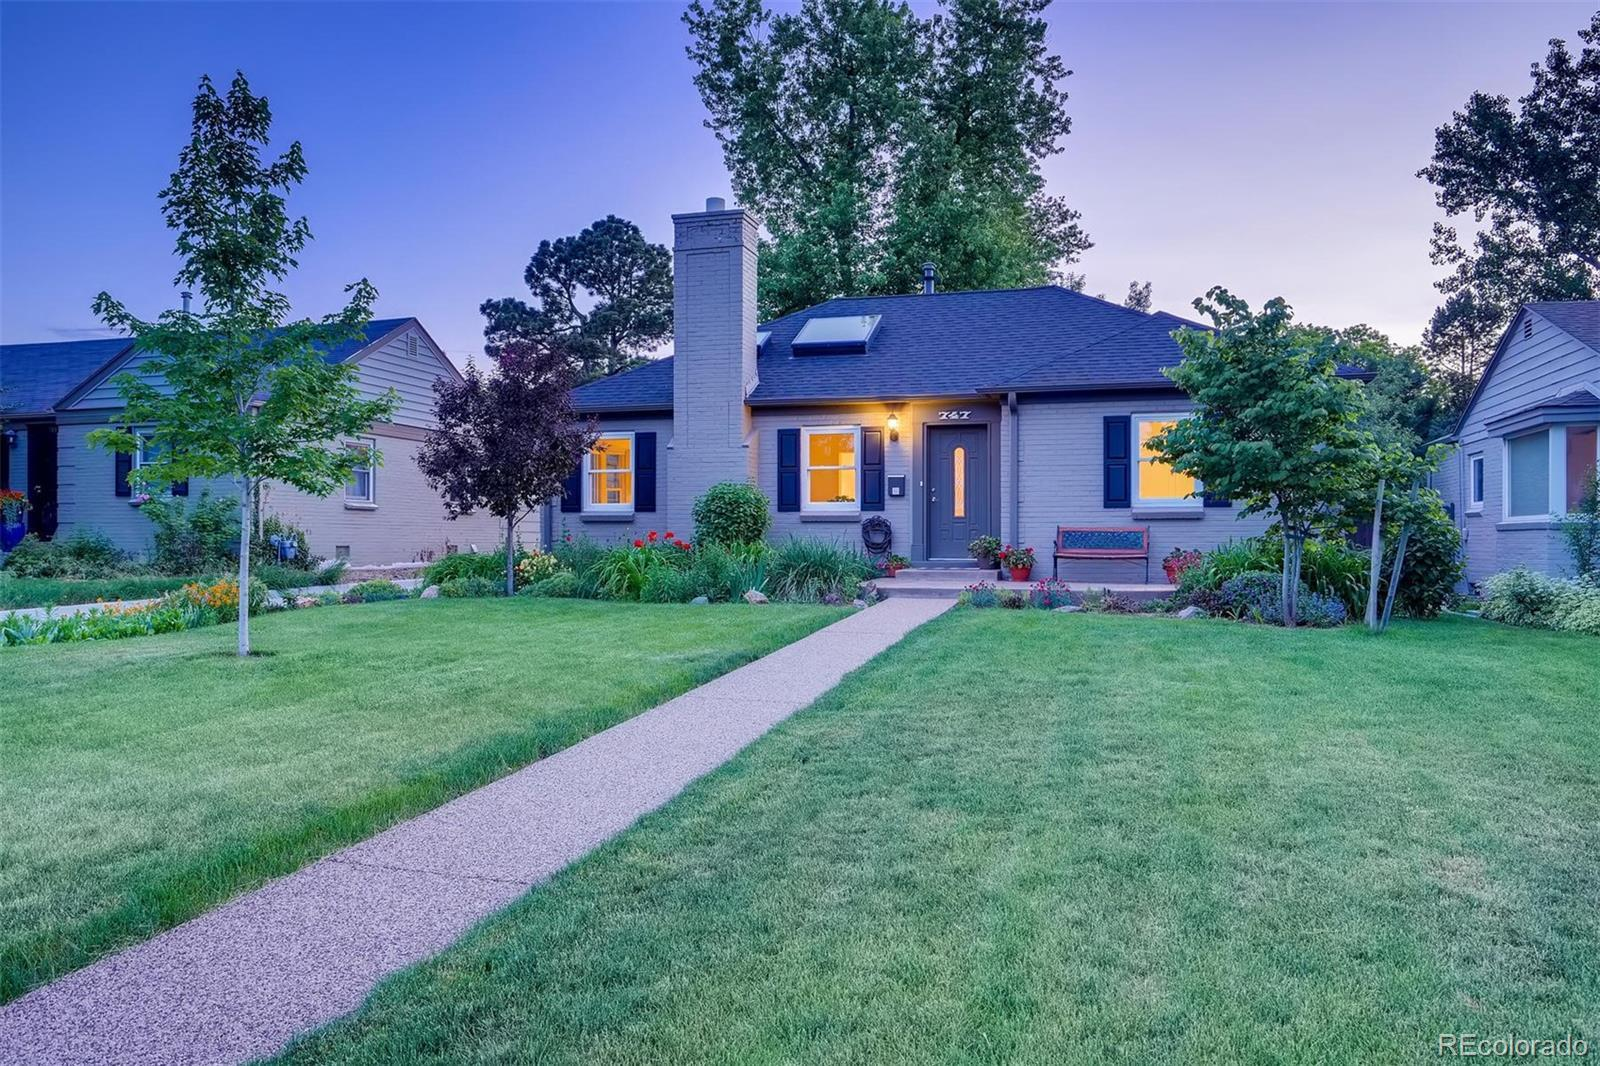 747 Grape Street, Denver, CO 80220 - #: 4736935